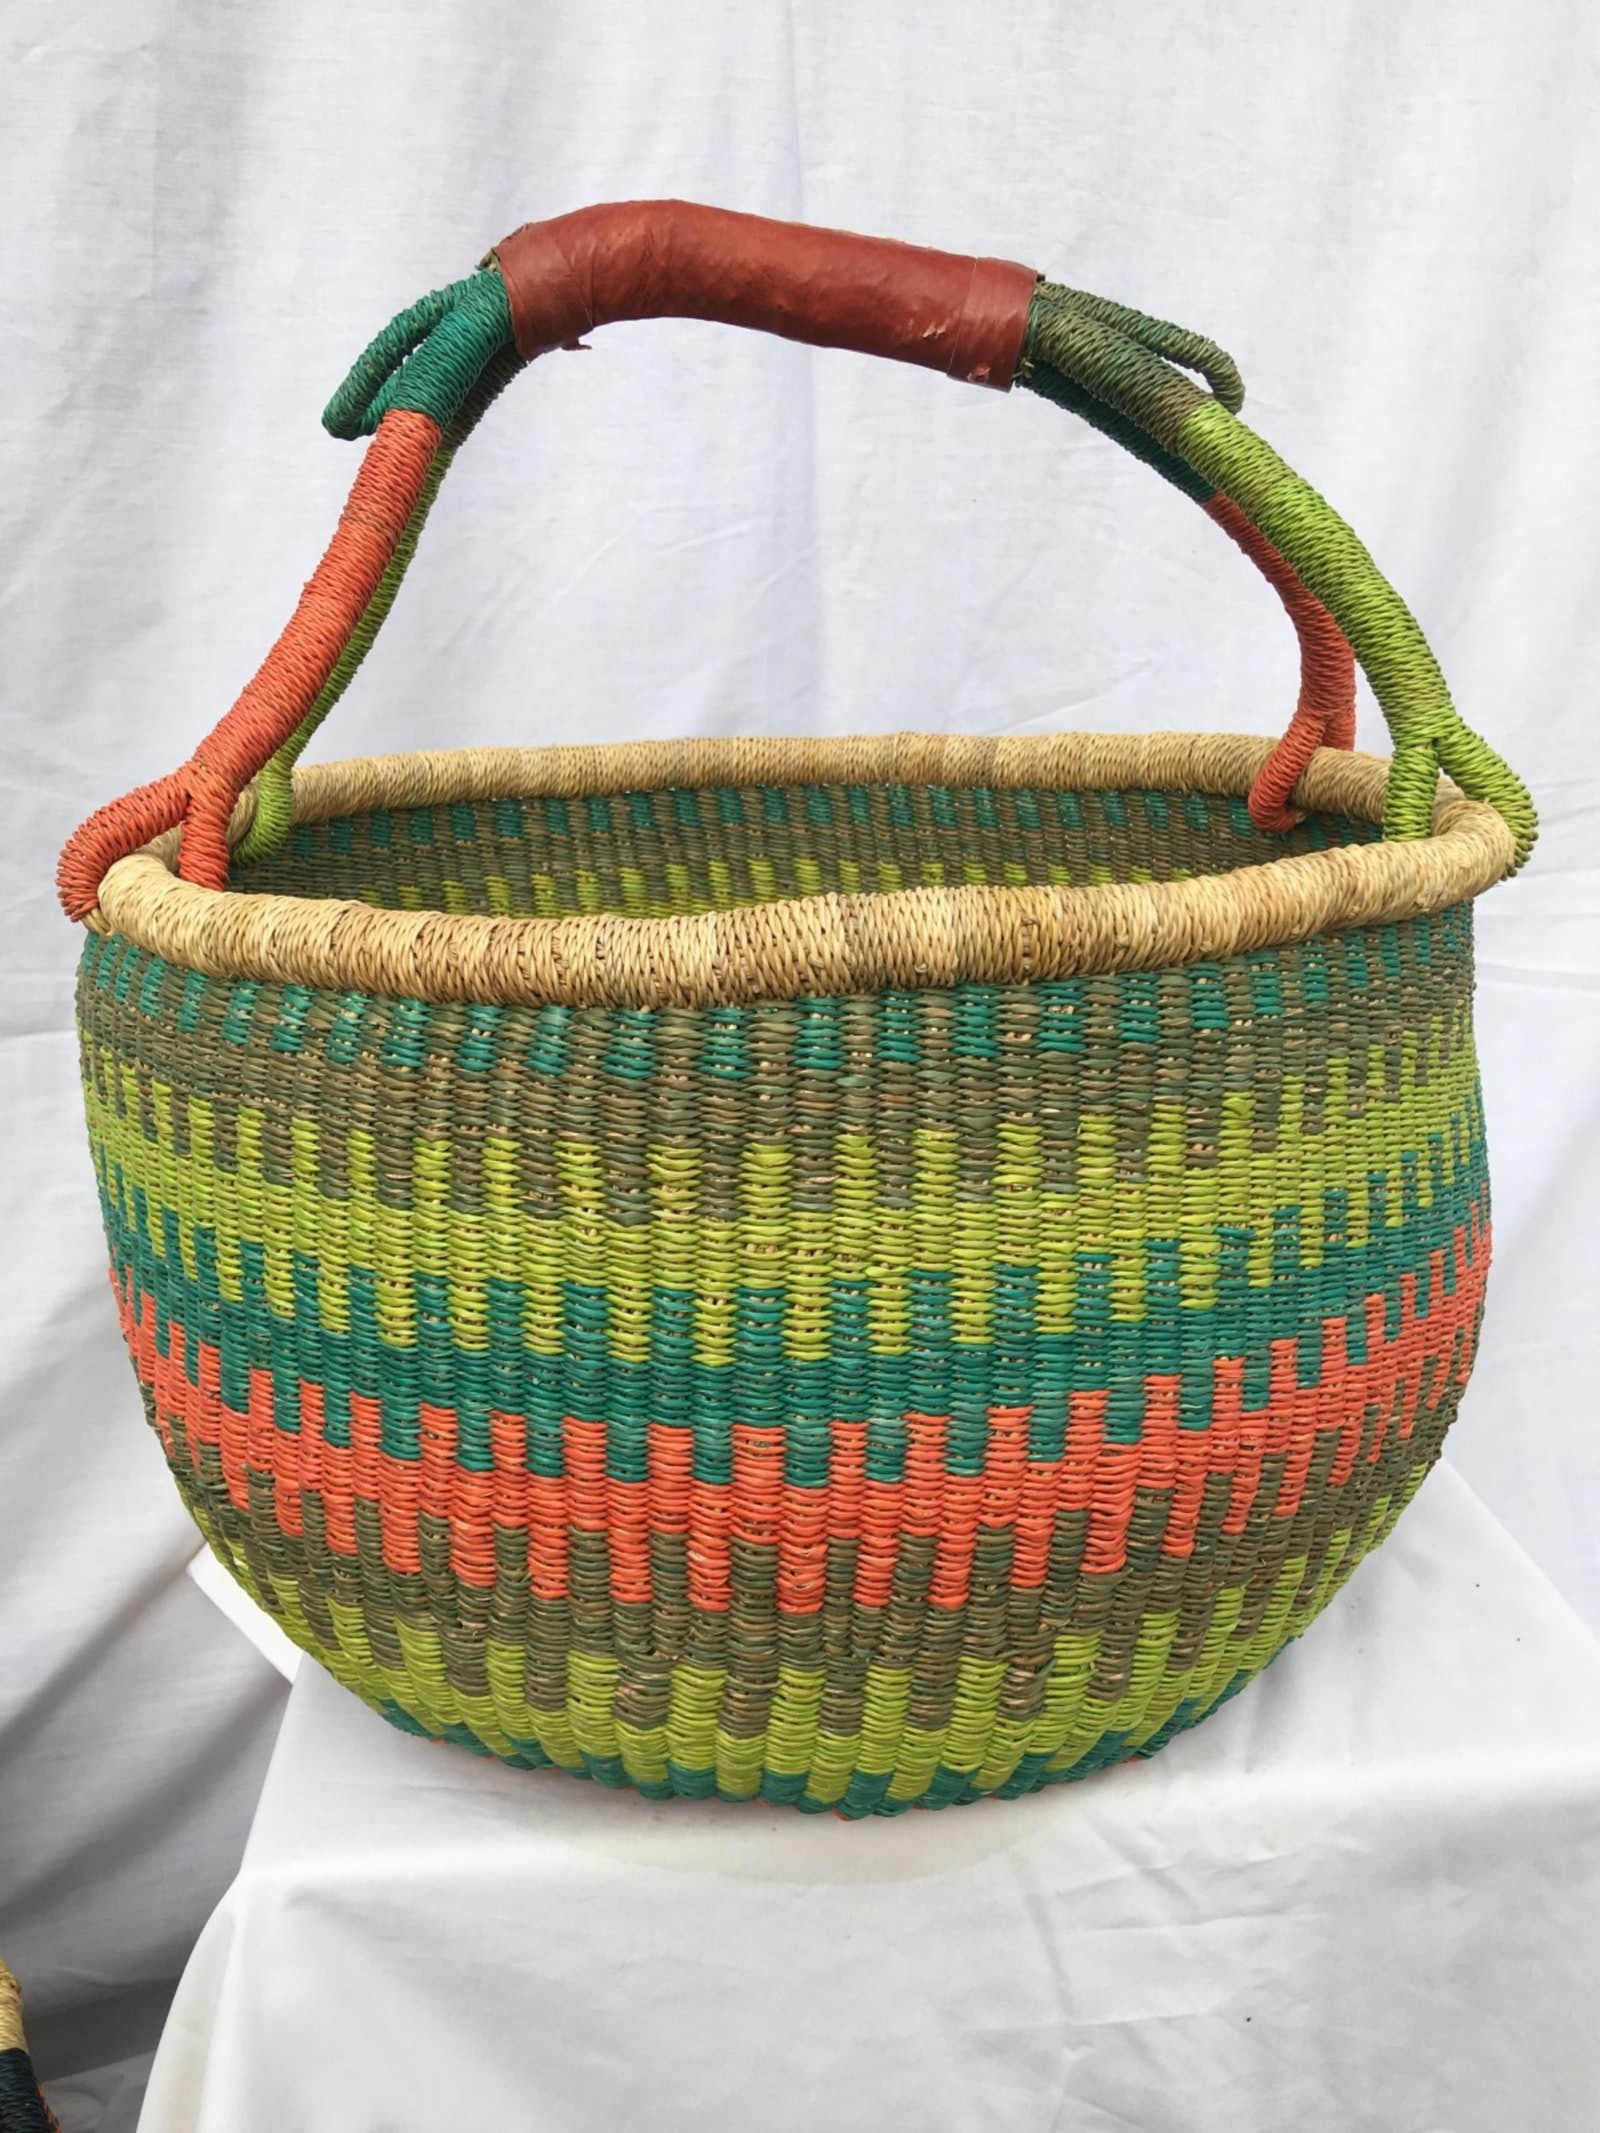 Plastic Free Shopping Baskets - Built to Last a Lifetime